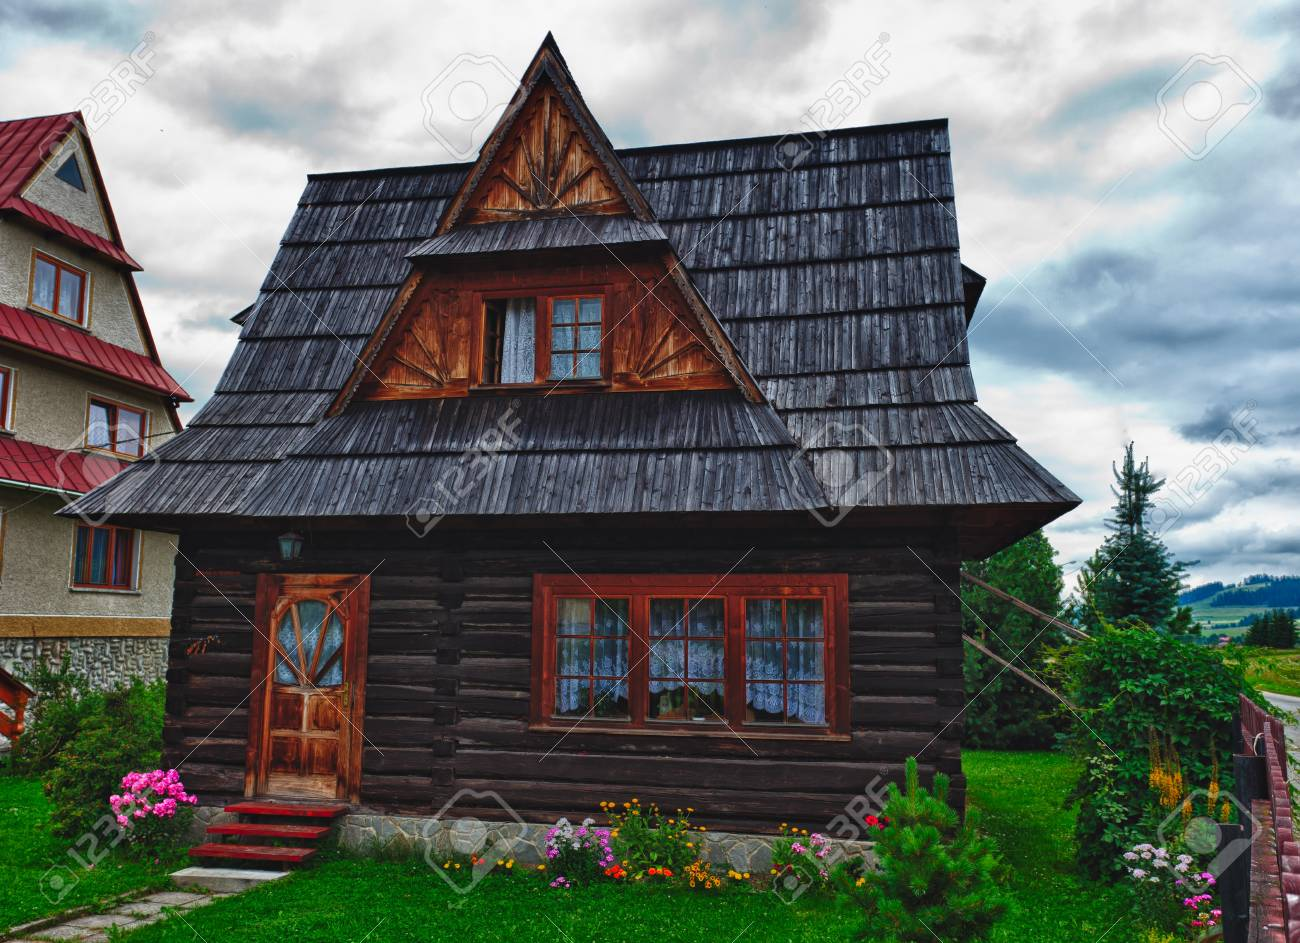 Traditional House in the High Tatra mountains, Poland Stock Photo - 12385627